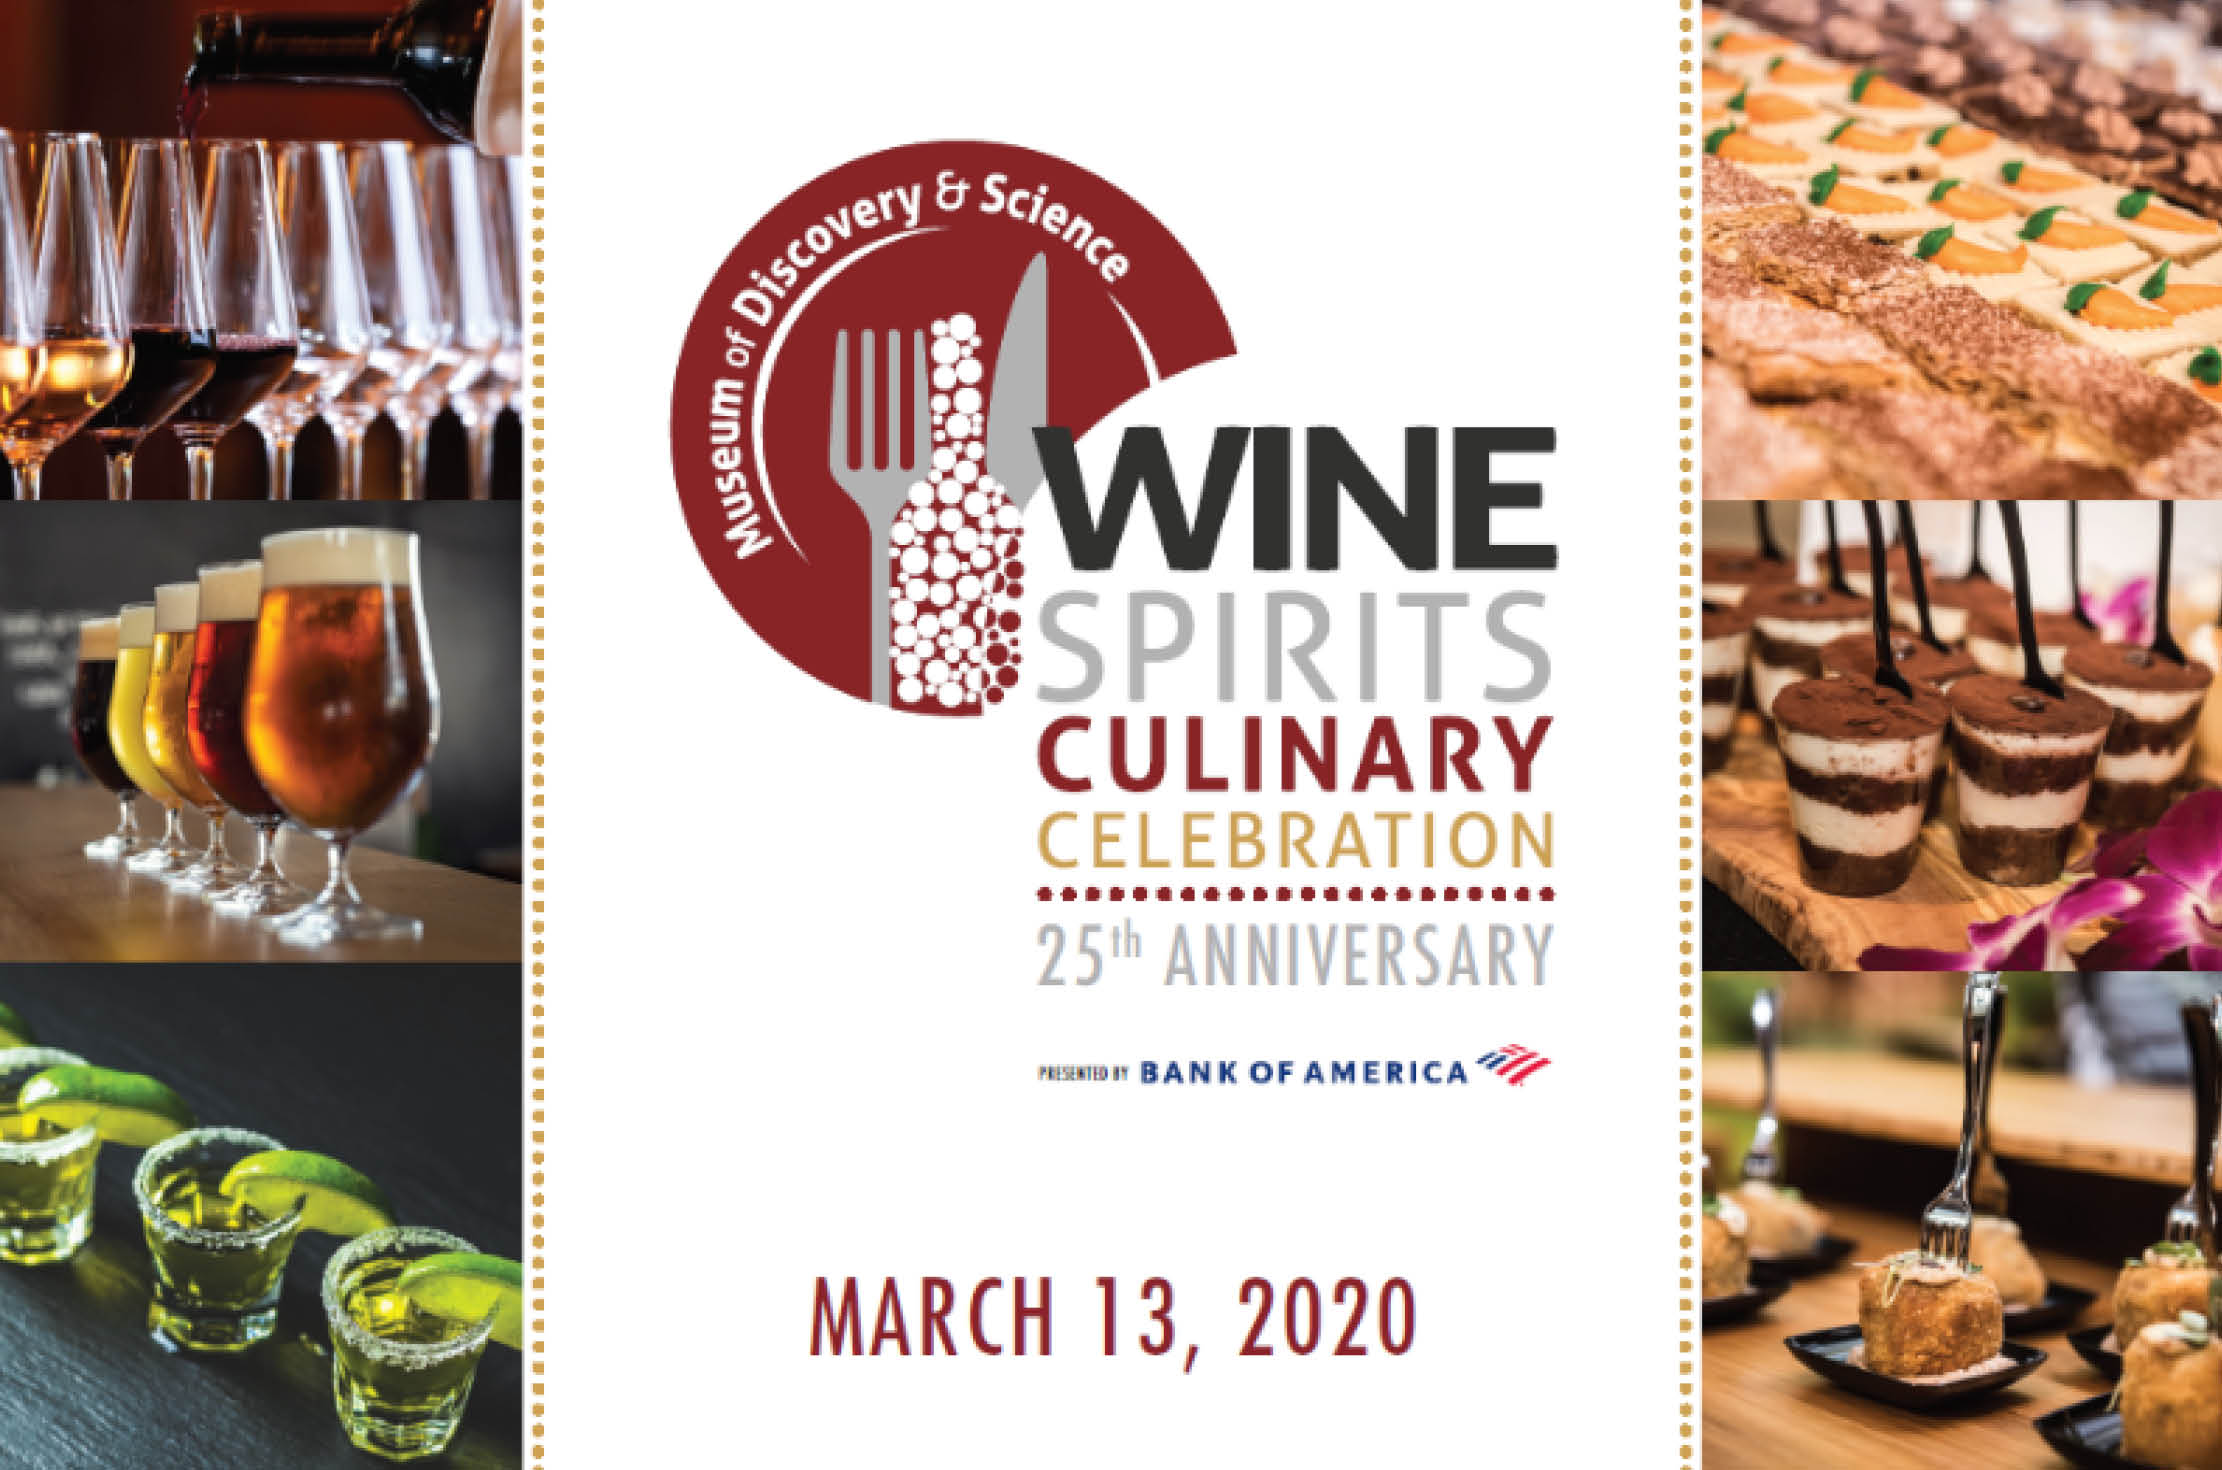 25th Annual Bank of America Wine, Spirits & Culinary Celebration